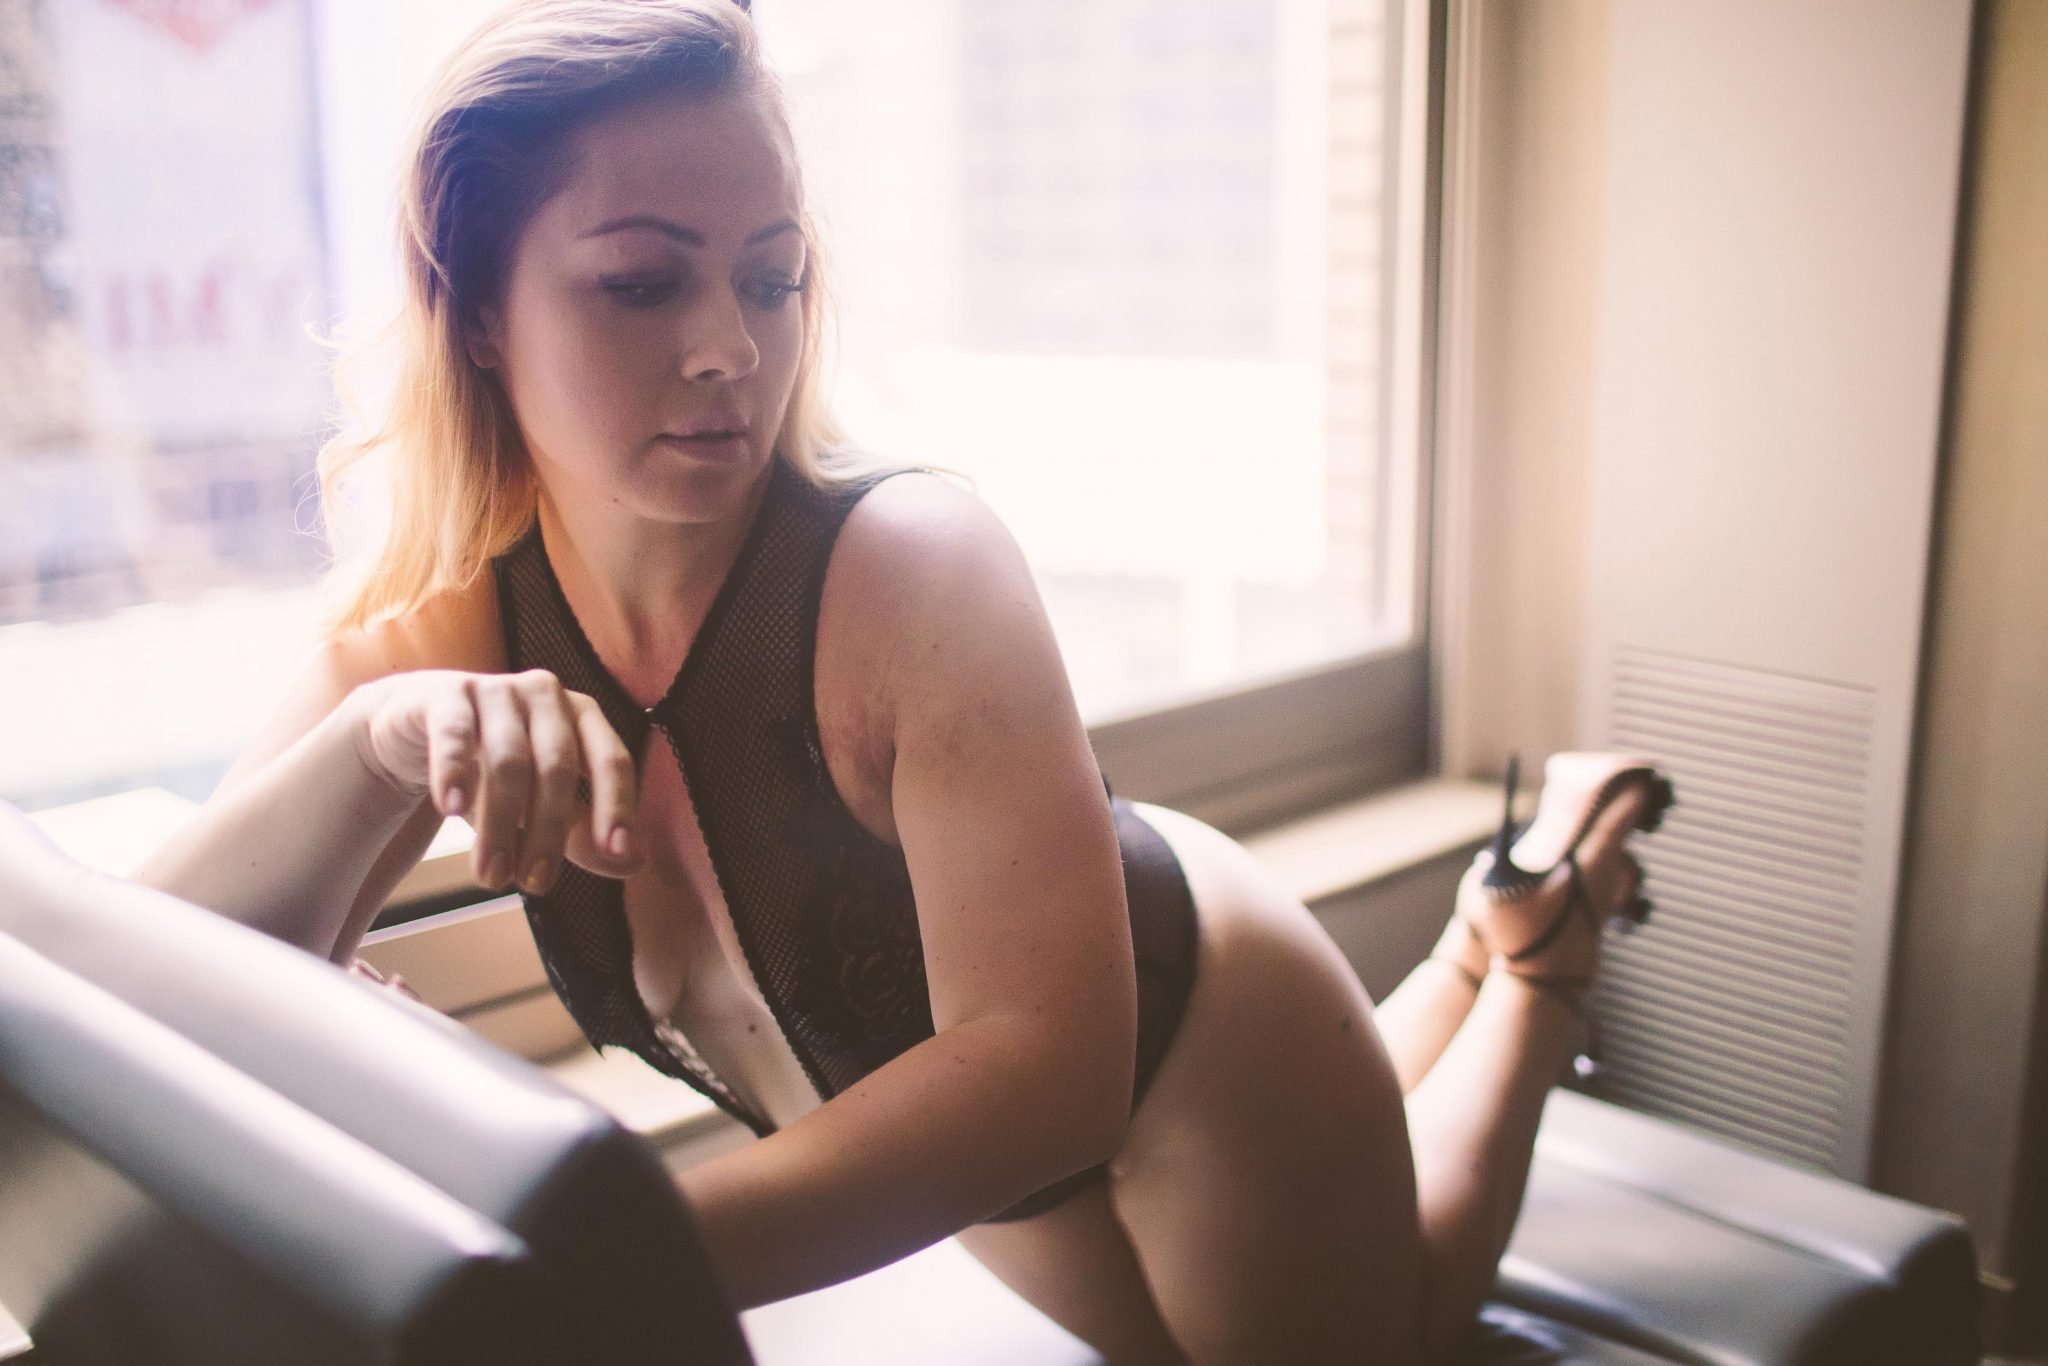 A boudoir photography session at W Times Square Hotel